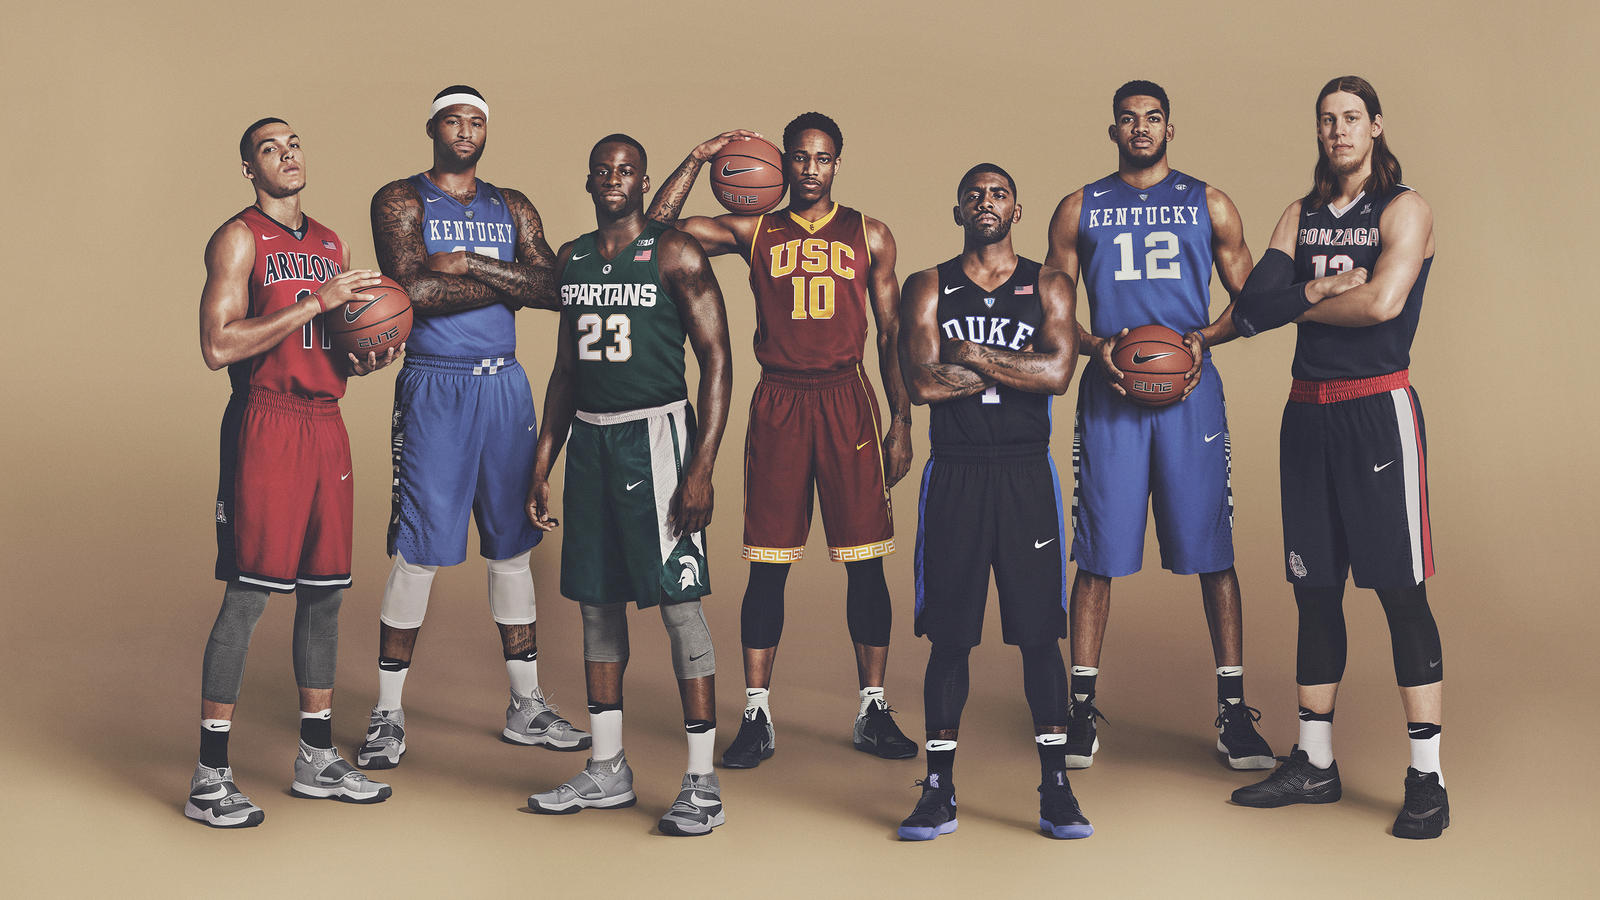 Nba Stars X March Madness In Nike College Uniforms Hooped Up